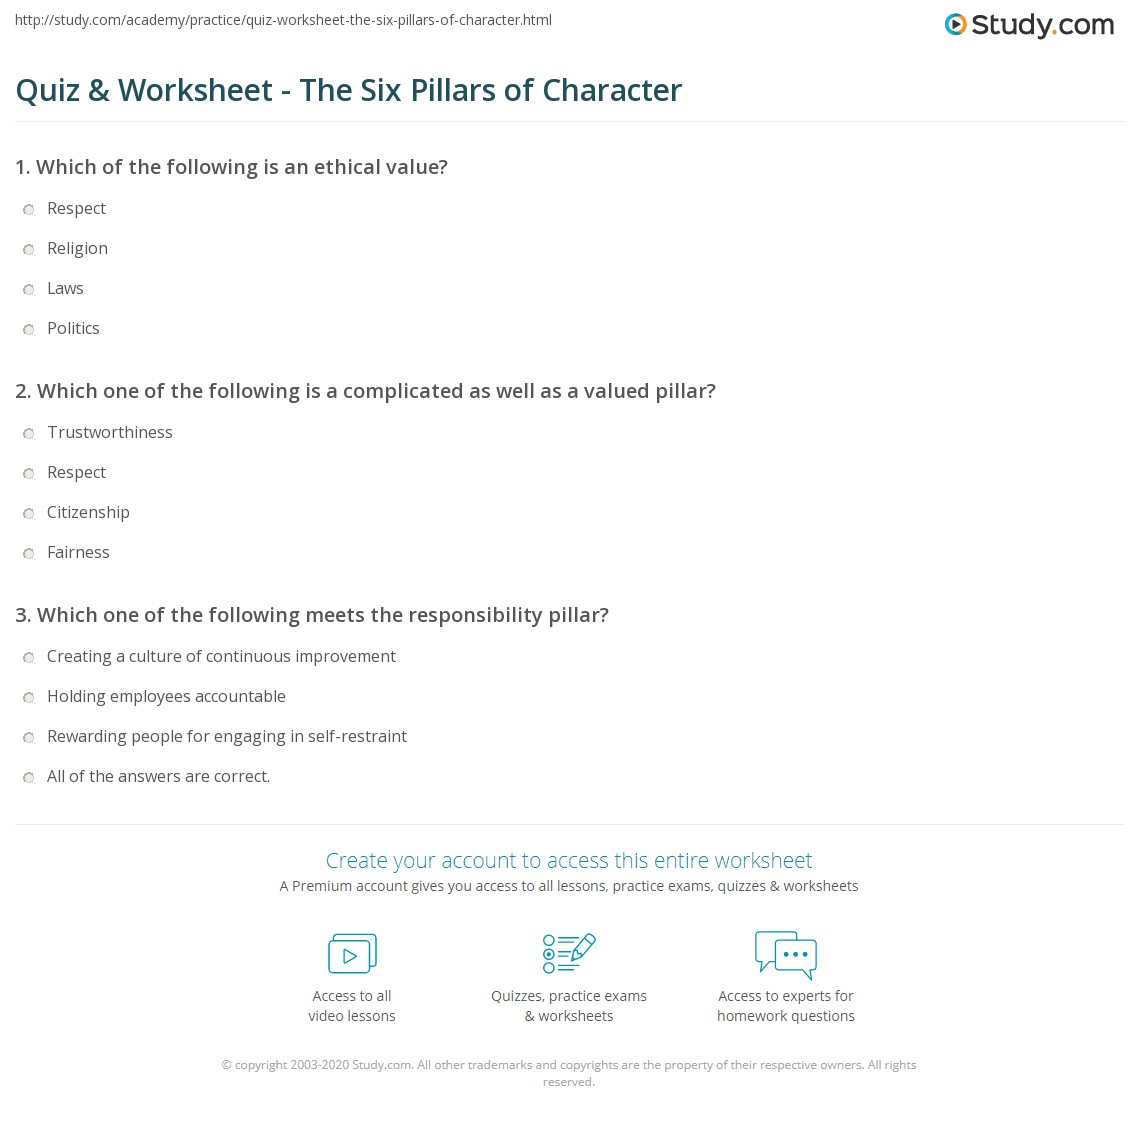 Worksheets Six Pillars Of Character Worksheets quiz worksheet the six pillars of character study com print business ethics worksheet